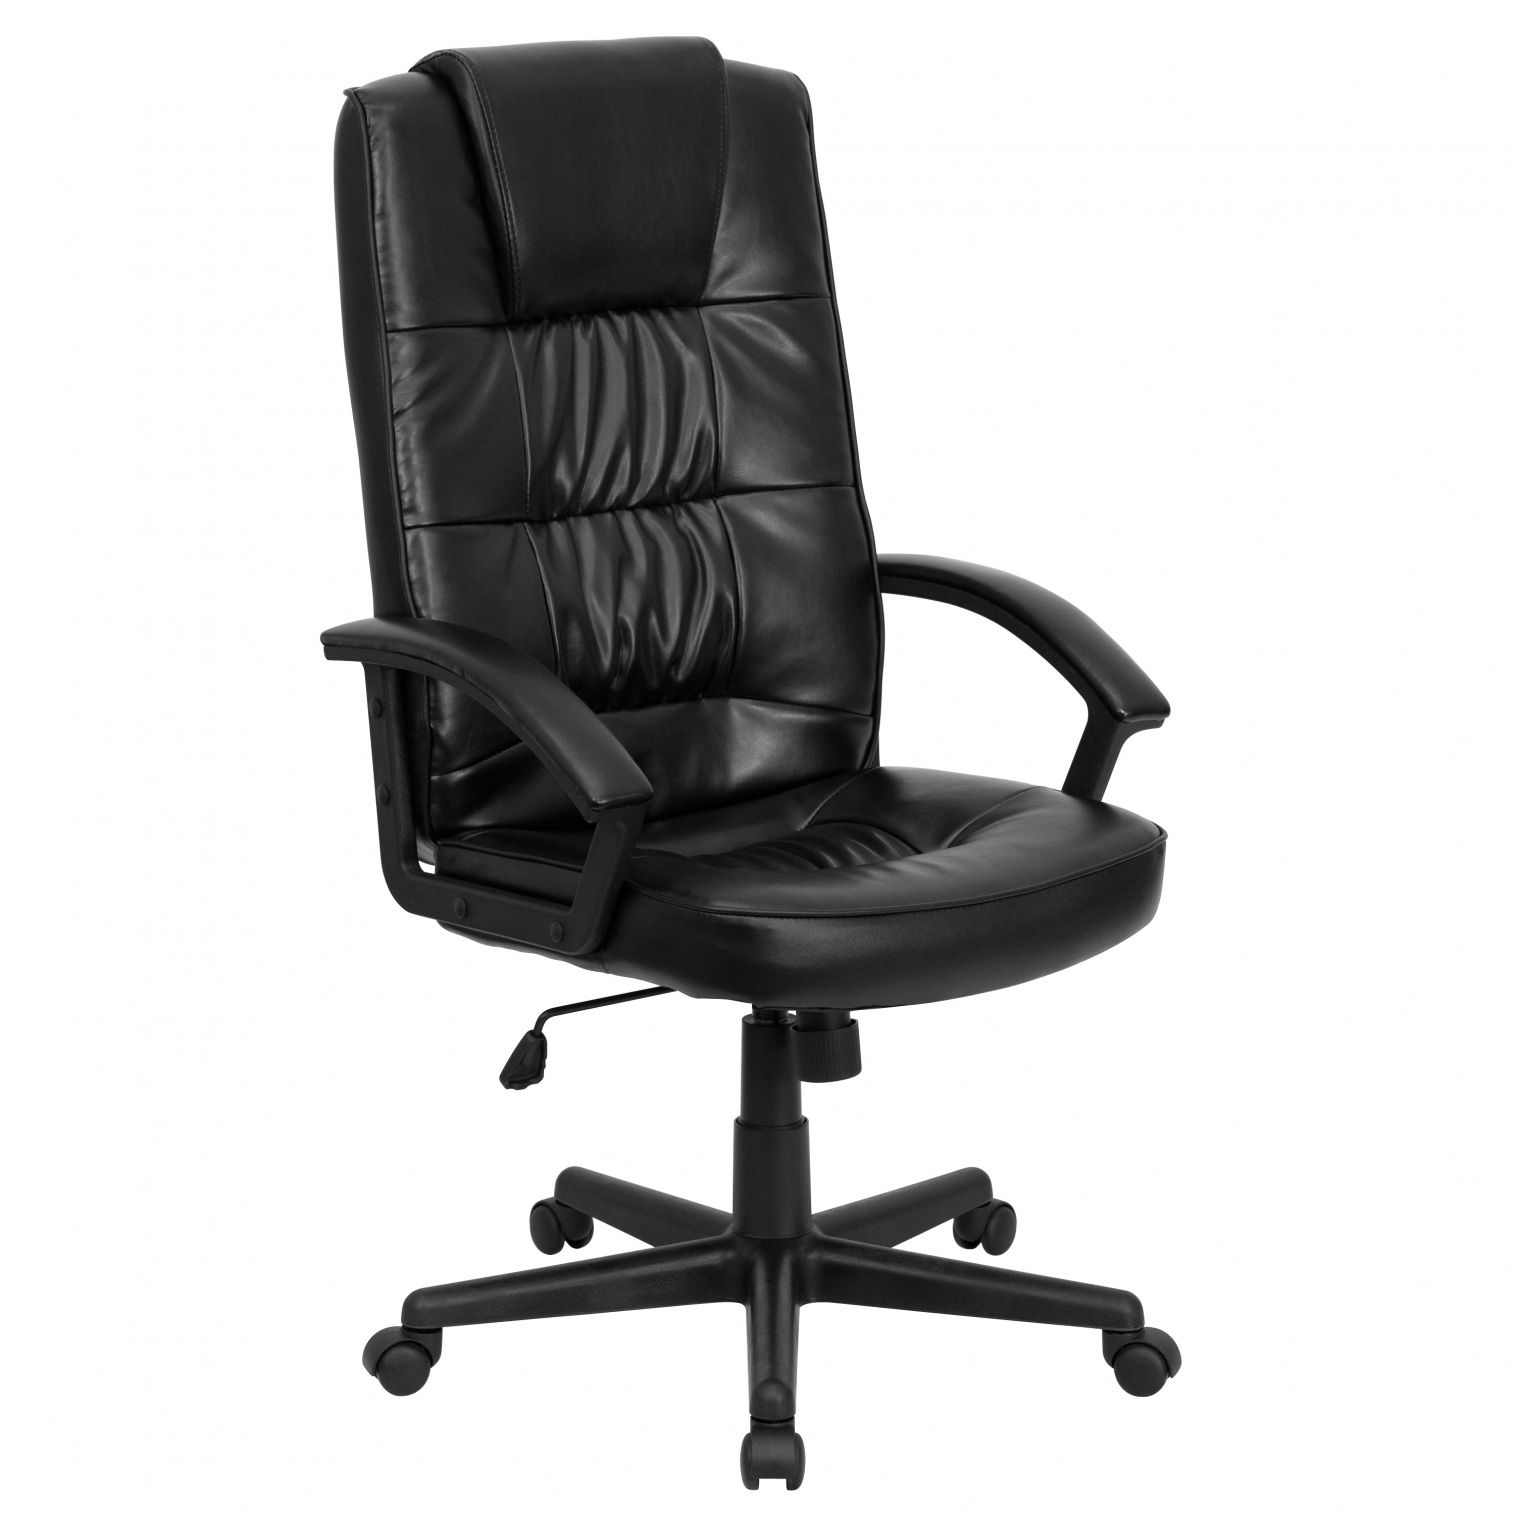 Ripple Black Leather Office Chair Furniture For Home Check More At Http